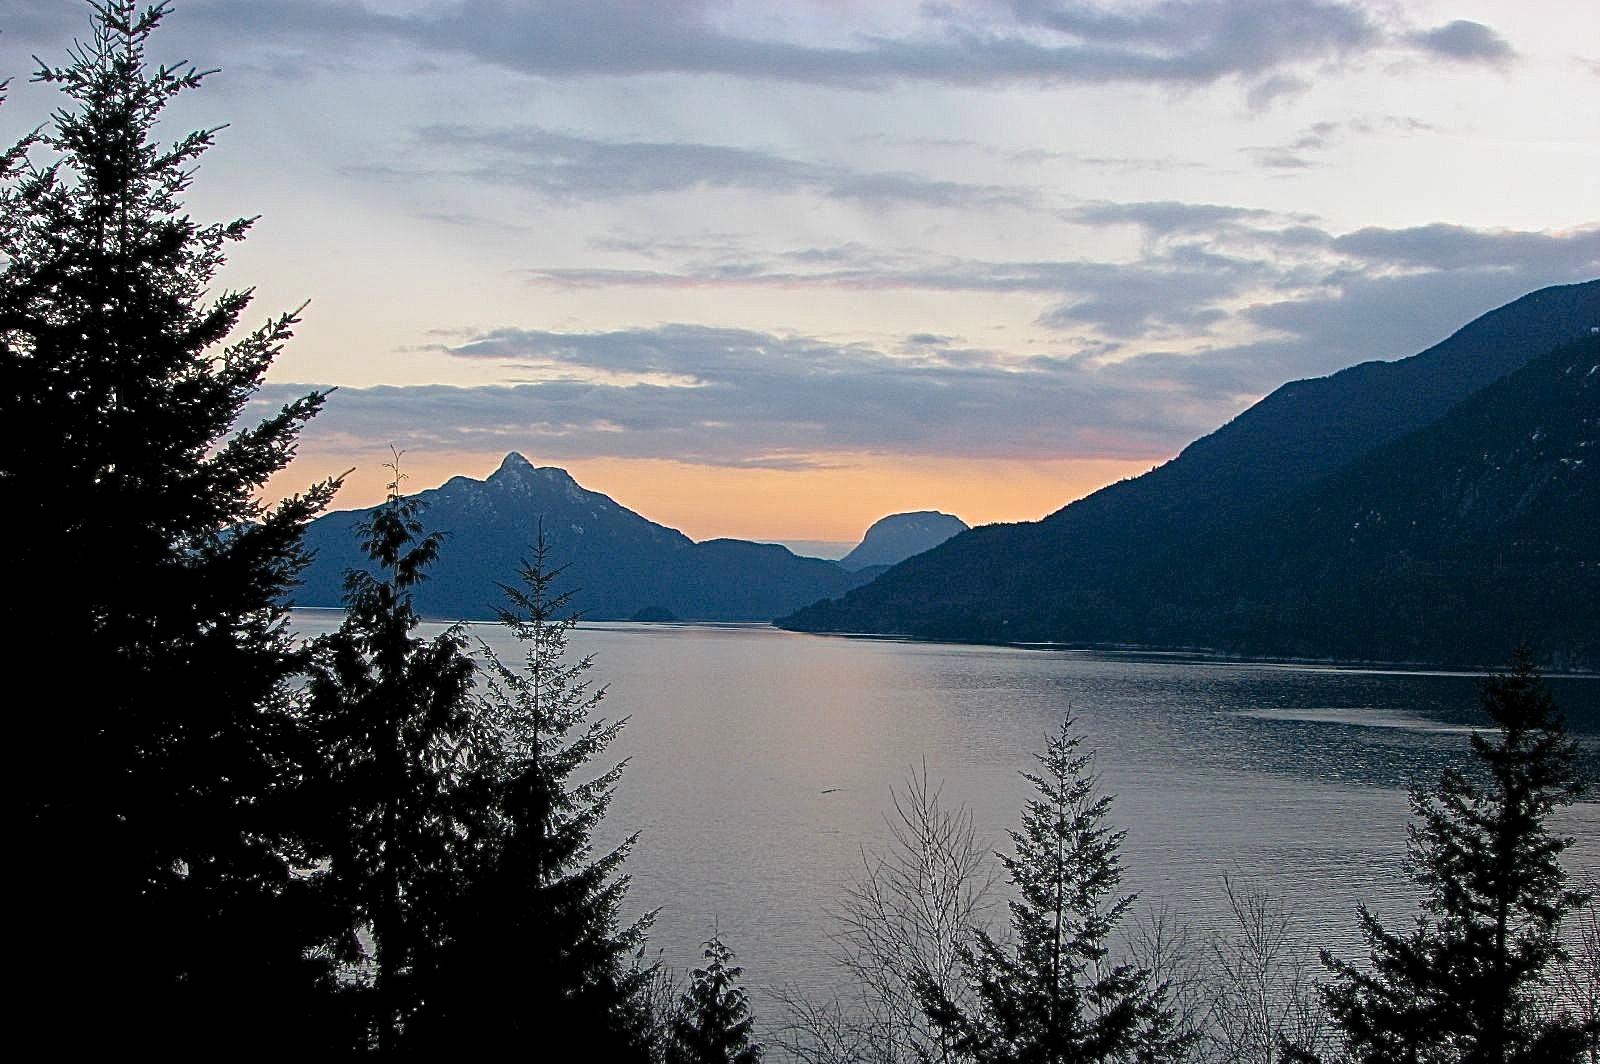 Howe Sound near Squamish, BC